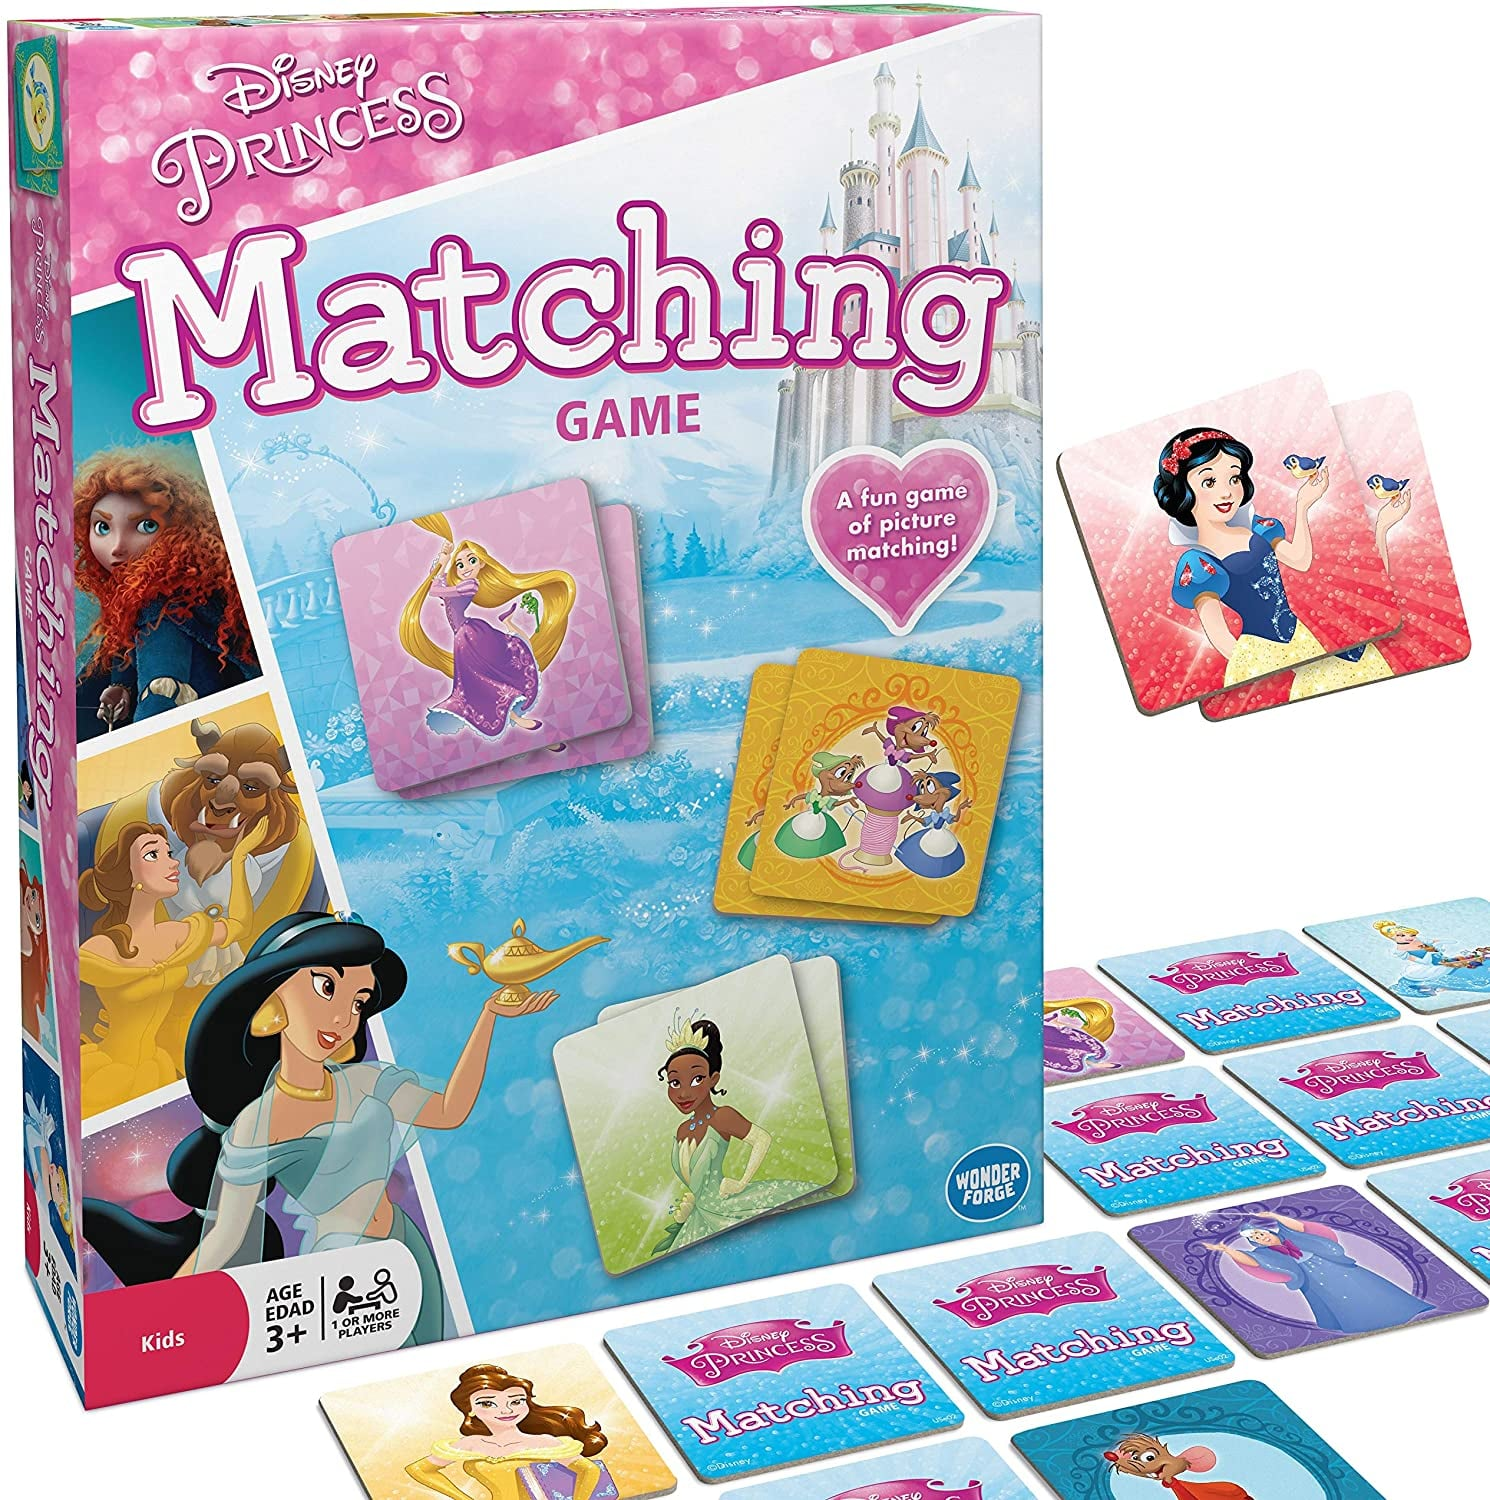 Wonder Forge Disney Princess Matching Game Meet The Best Toys And Gift Ideas For 4 Year Old Kids In 2020 Popsugar Family Photo 53